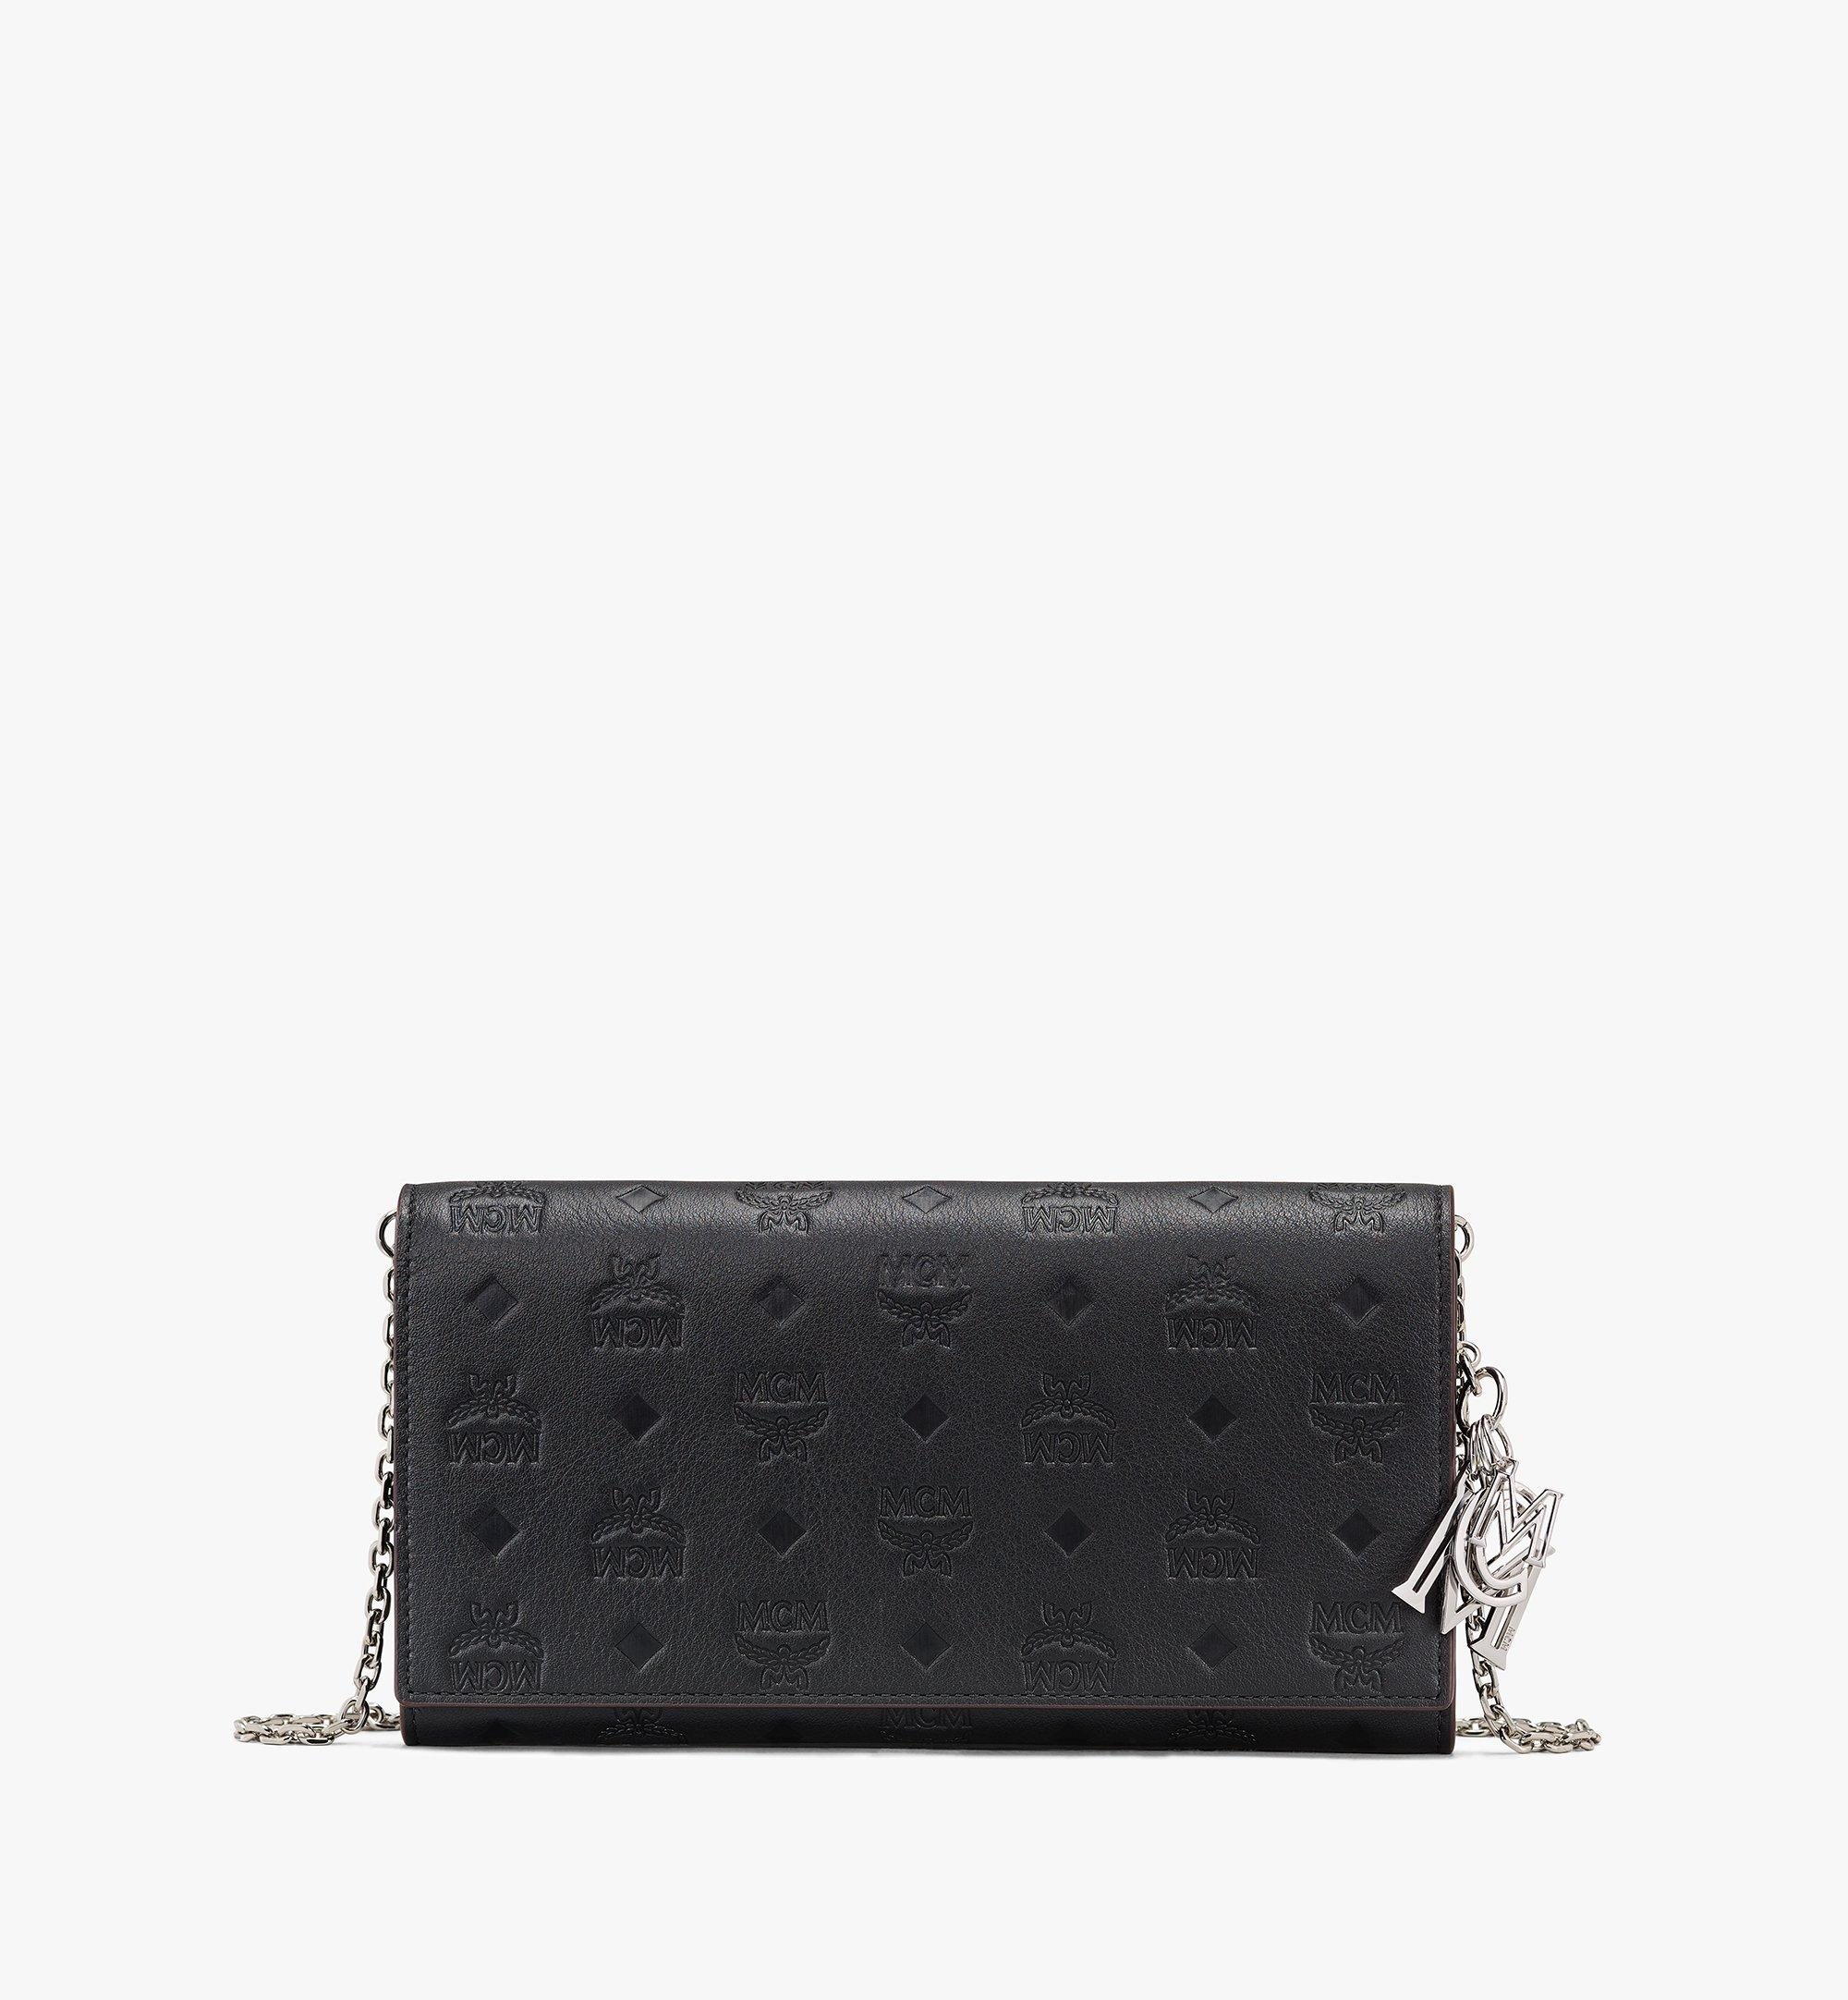 MCM Klara Chain Wallet in Monogram Leather Black MYLASKM01BK001 Alternate View 1